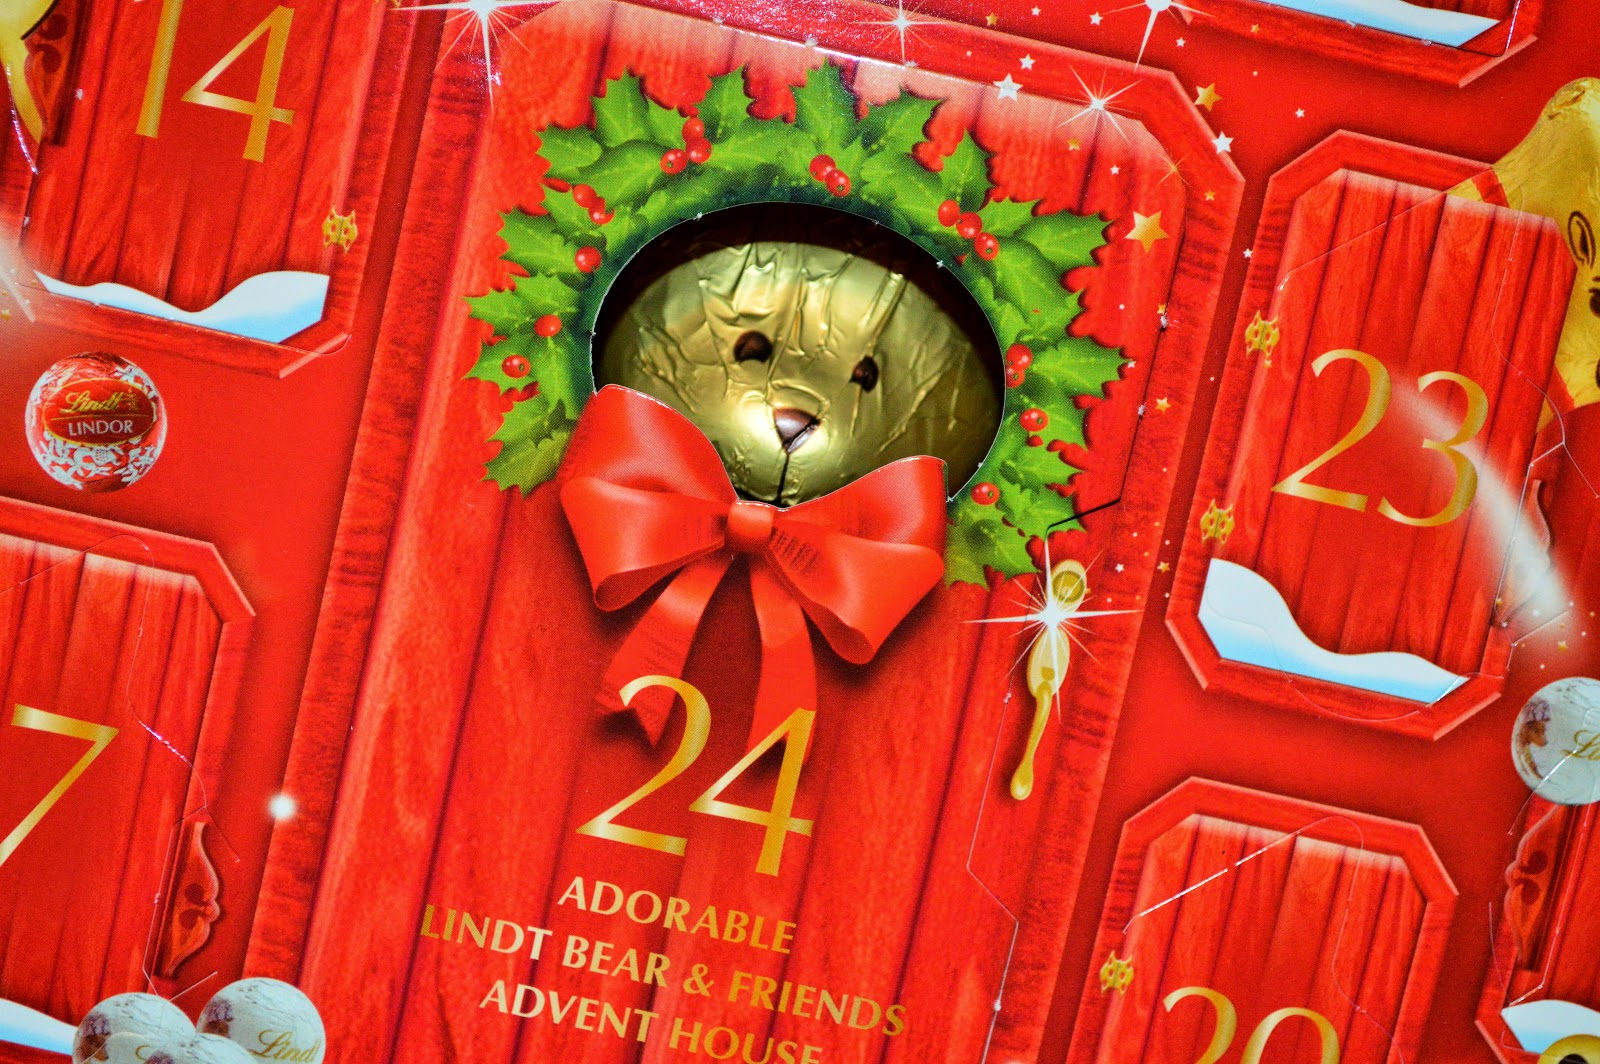 Lindt Bear Adorable Advent Calendar